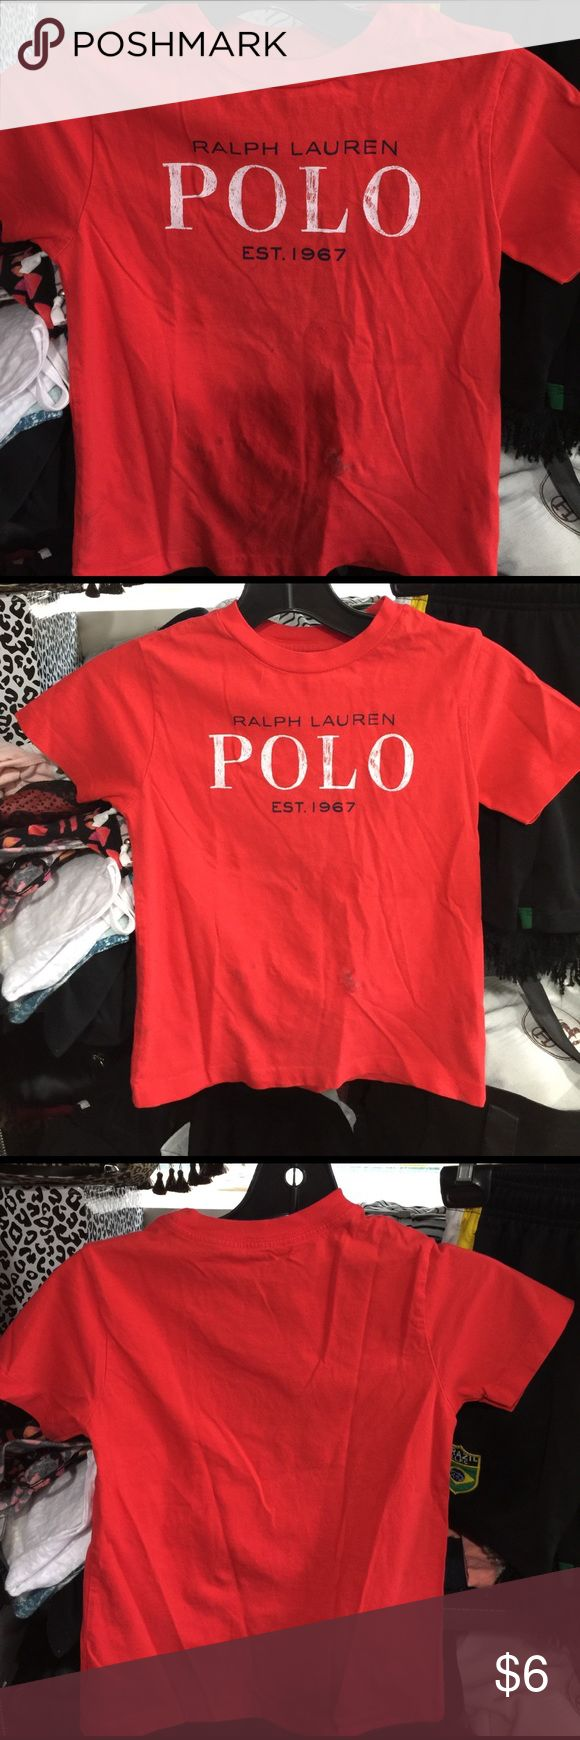 Red polo shirt by viviglam 👕👕 Super cute red polo shirt has some spots can be dry clean or use stain remover still great top to use !!! Polo by Ralph Lauren Shirts & Tops Polos